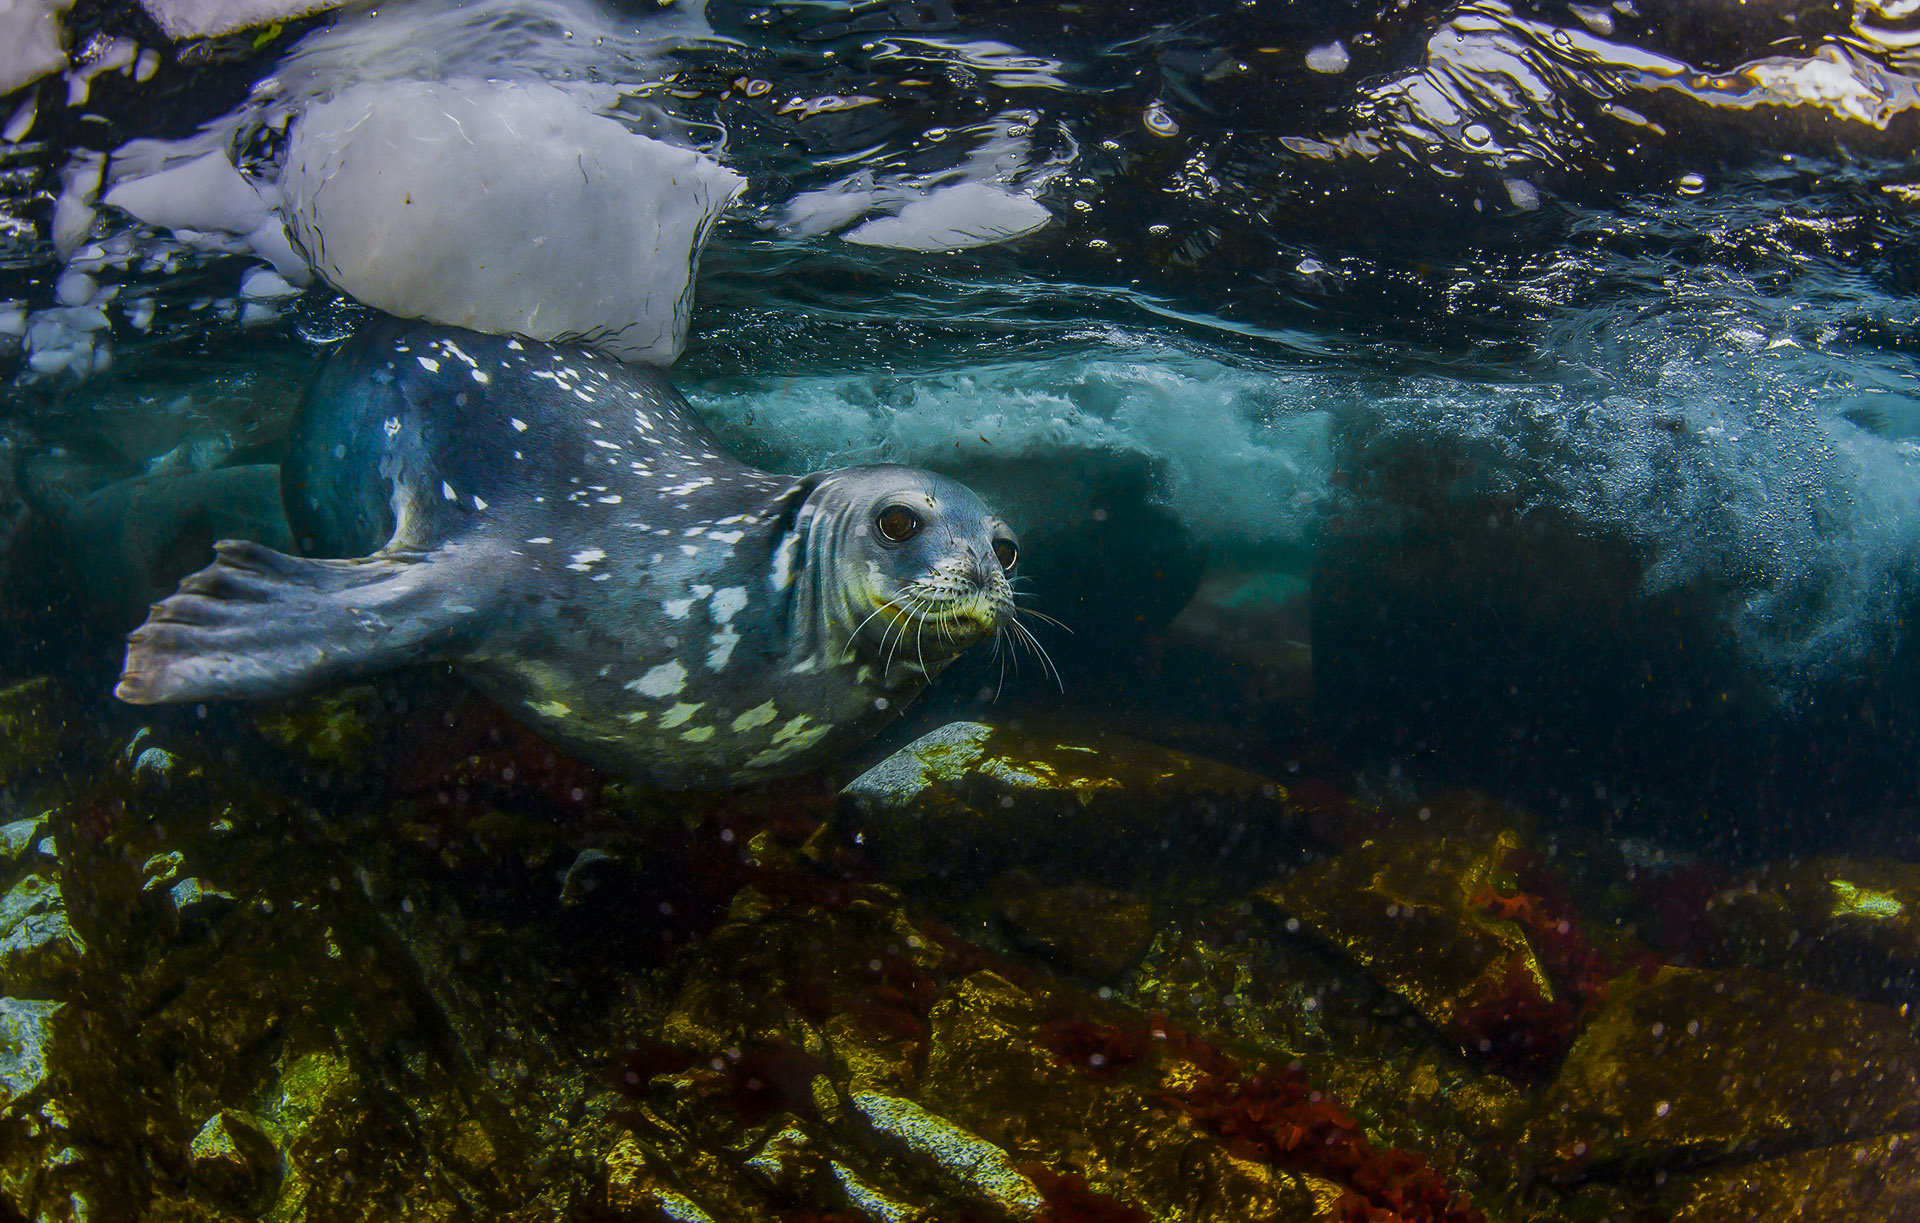 The strongest swimmer in the region is the Weddell seal, which can dive down 600 metres for food. Hunting at this depth gives them access to cod icefish (their favourite seafood) and keeps them clear of predators such as the leopard seal, which are known to hunt other seals.